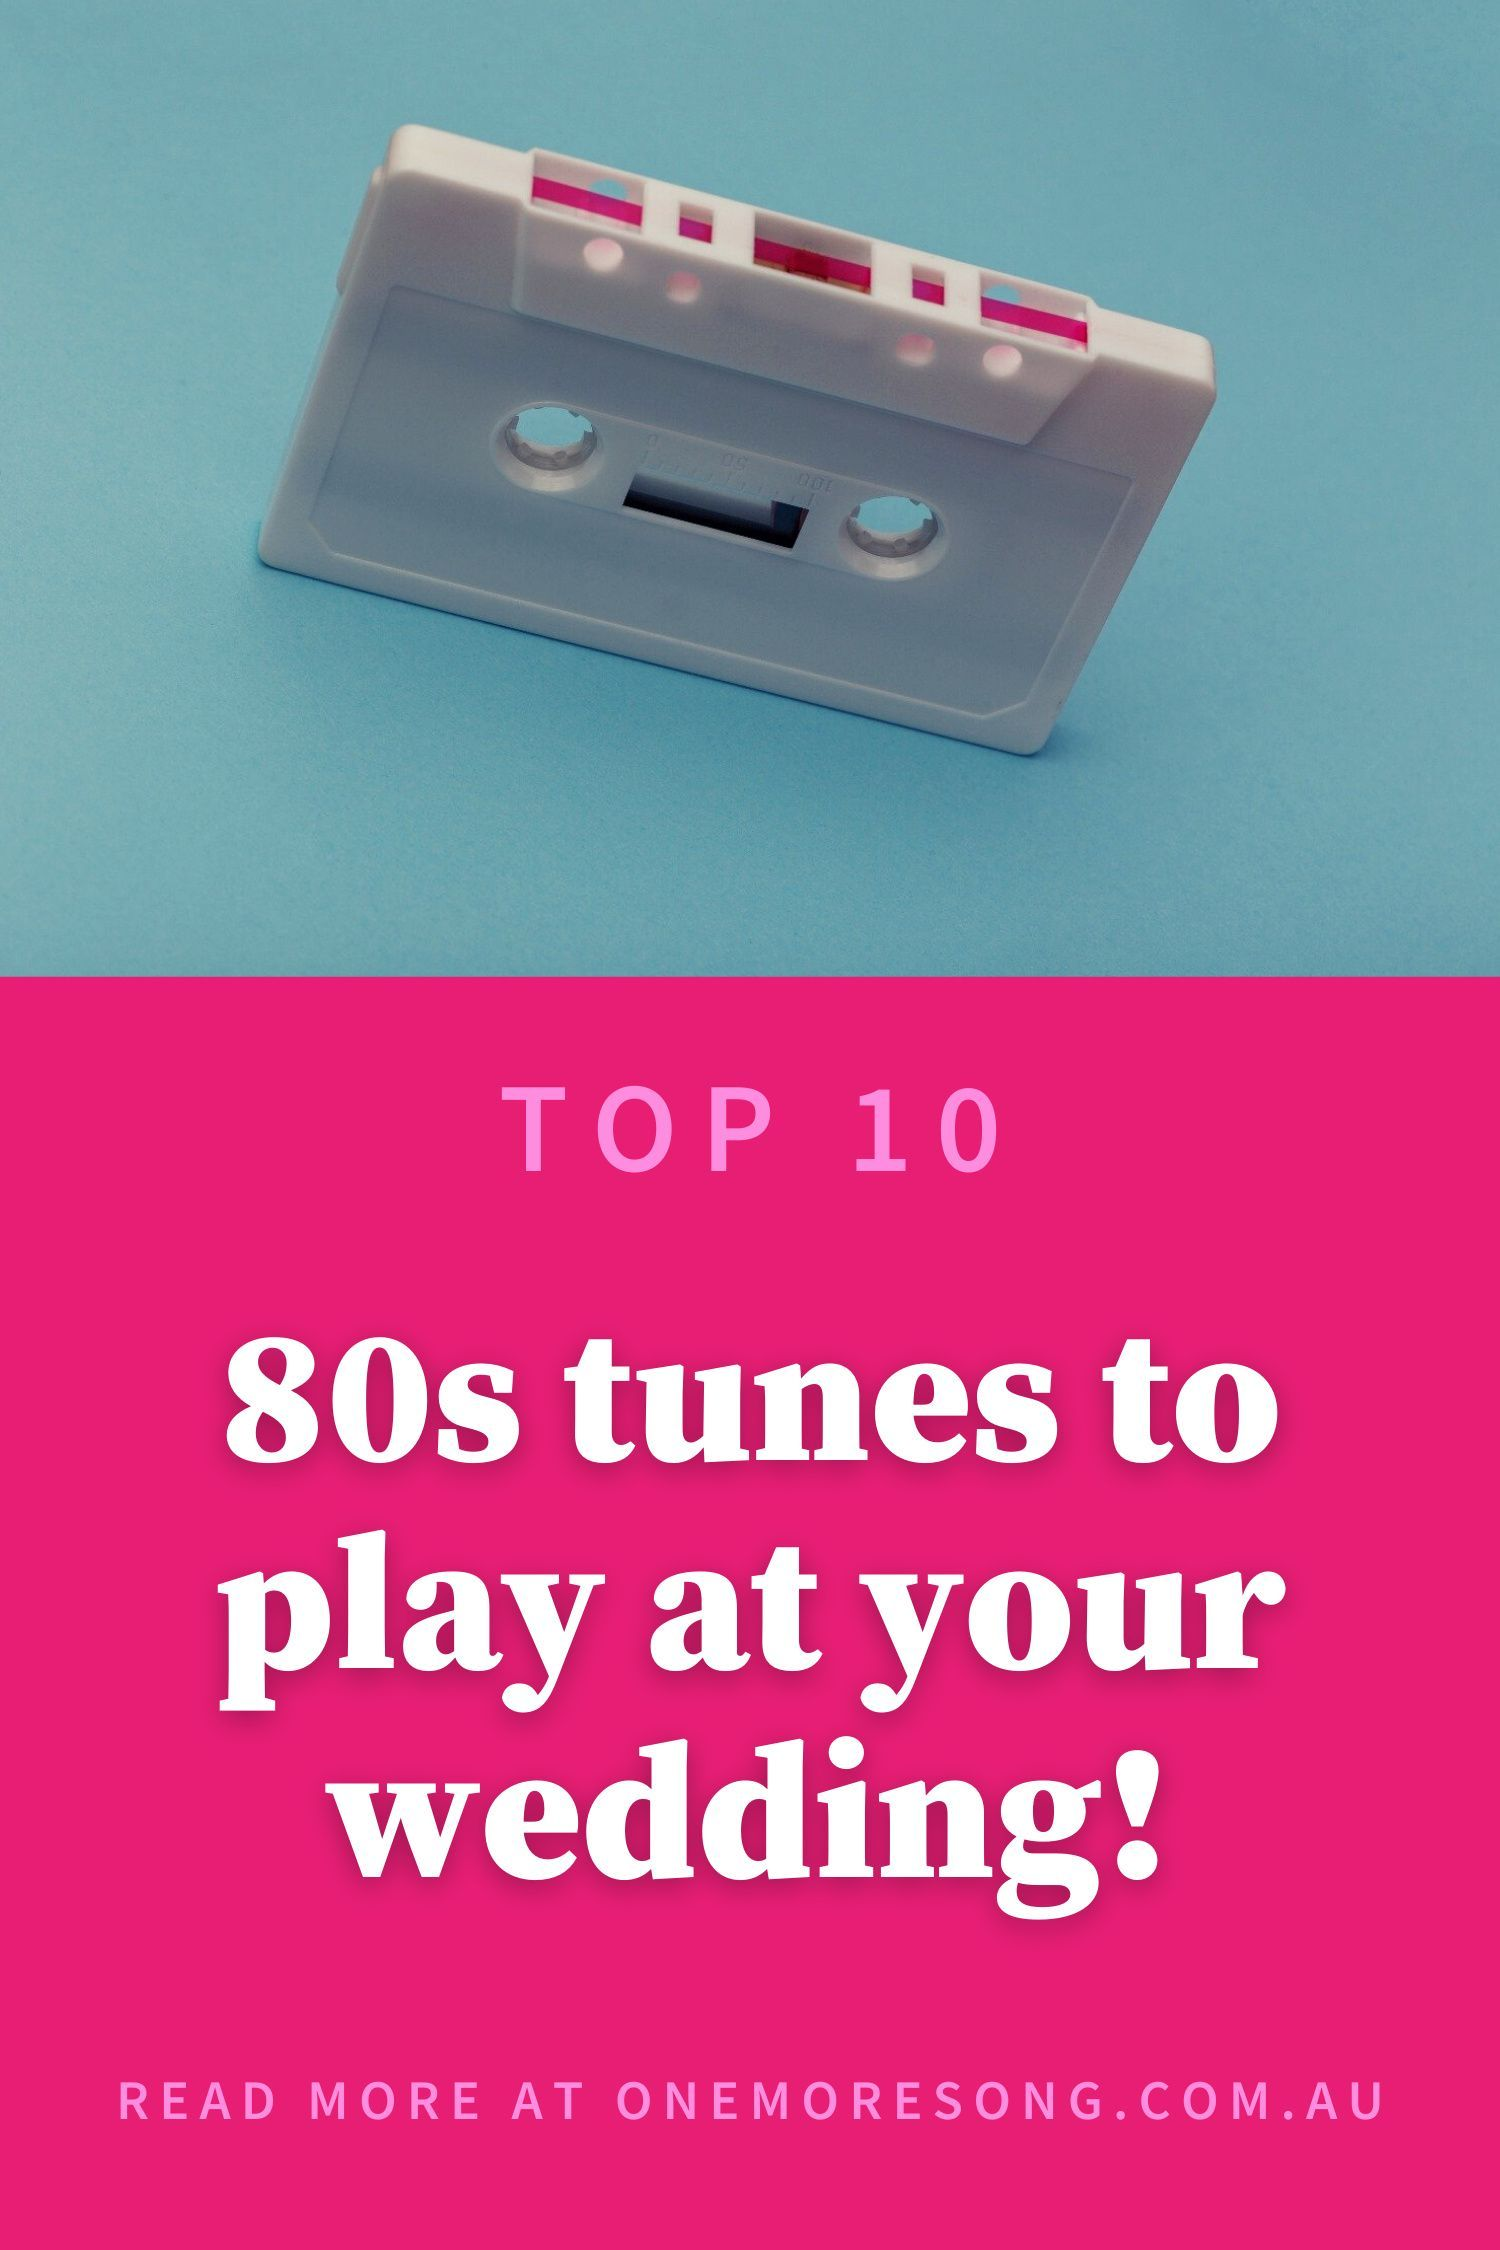 Melbourne's One More Song Wedding DJs list their all-time fave 80s dance floor jams perfect for a wedding reception! #weddingsongs #weddingplaylist #weddingsongsplaylist #weddingdj #weddingmusic